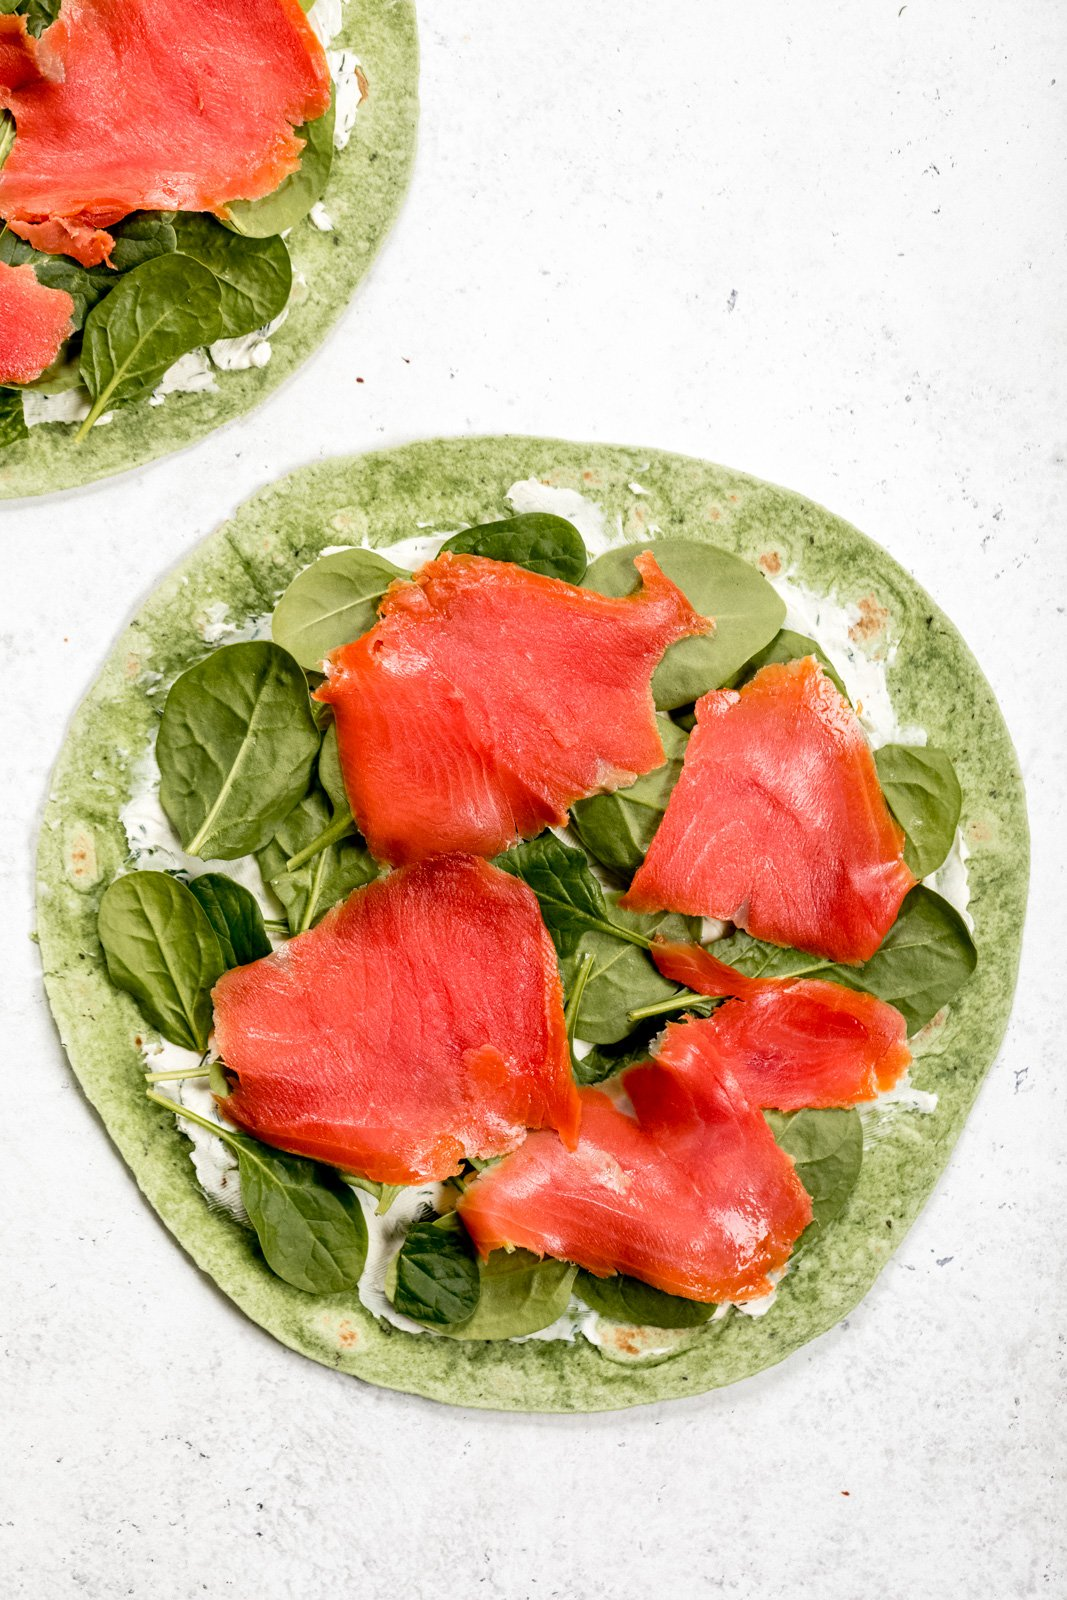 smoked salmon, spinach, and cream cheese on a spinach tortilla to make smoked salmon pinwheels